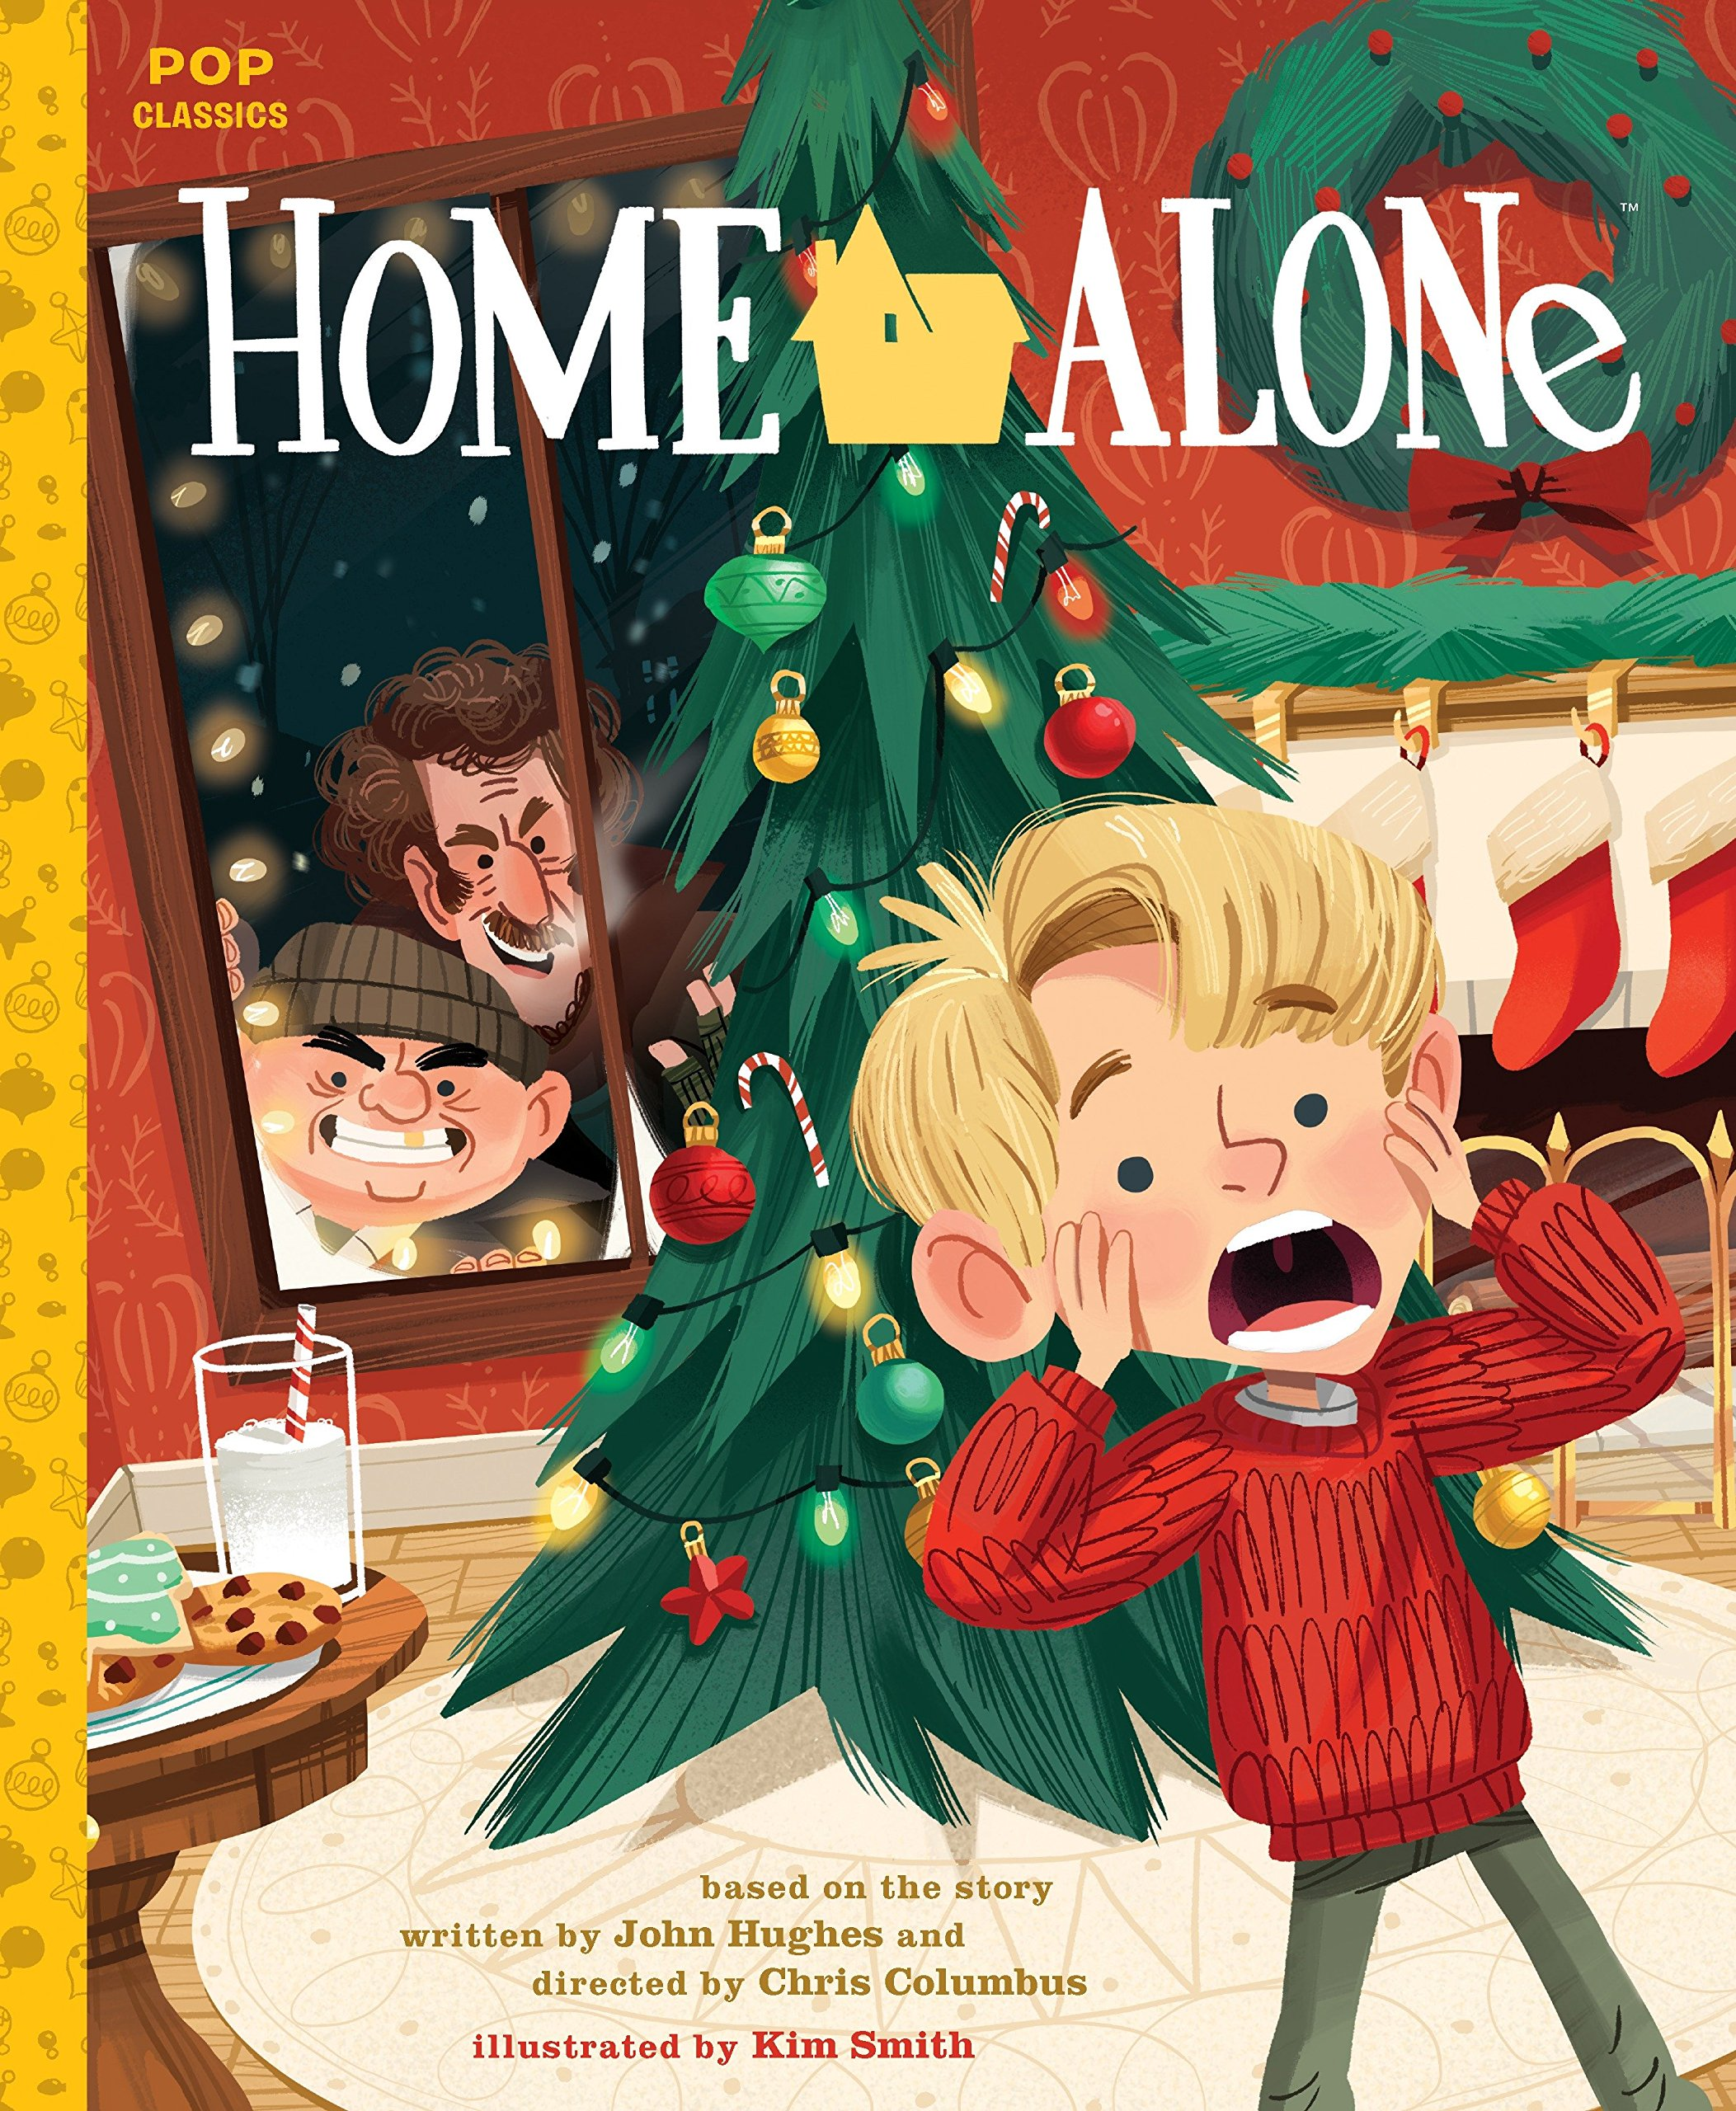 Buy Home Alone illustrated book by Kim Smith